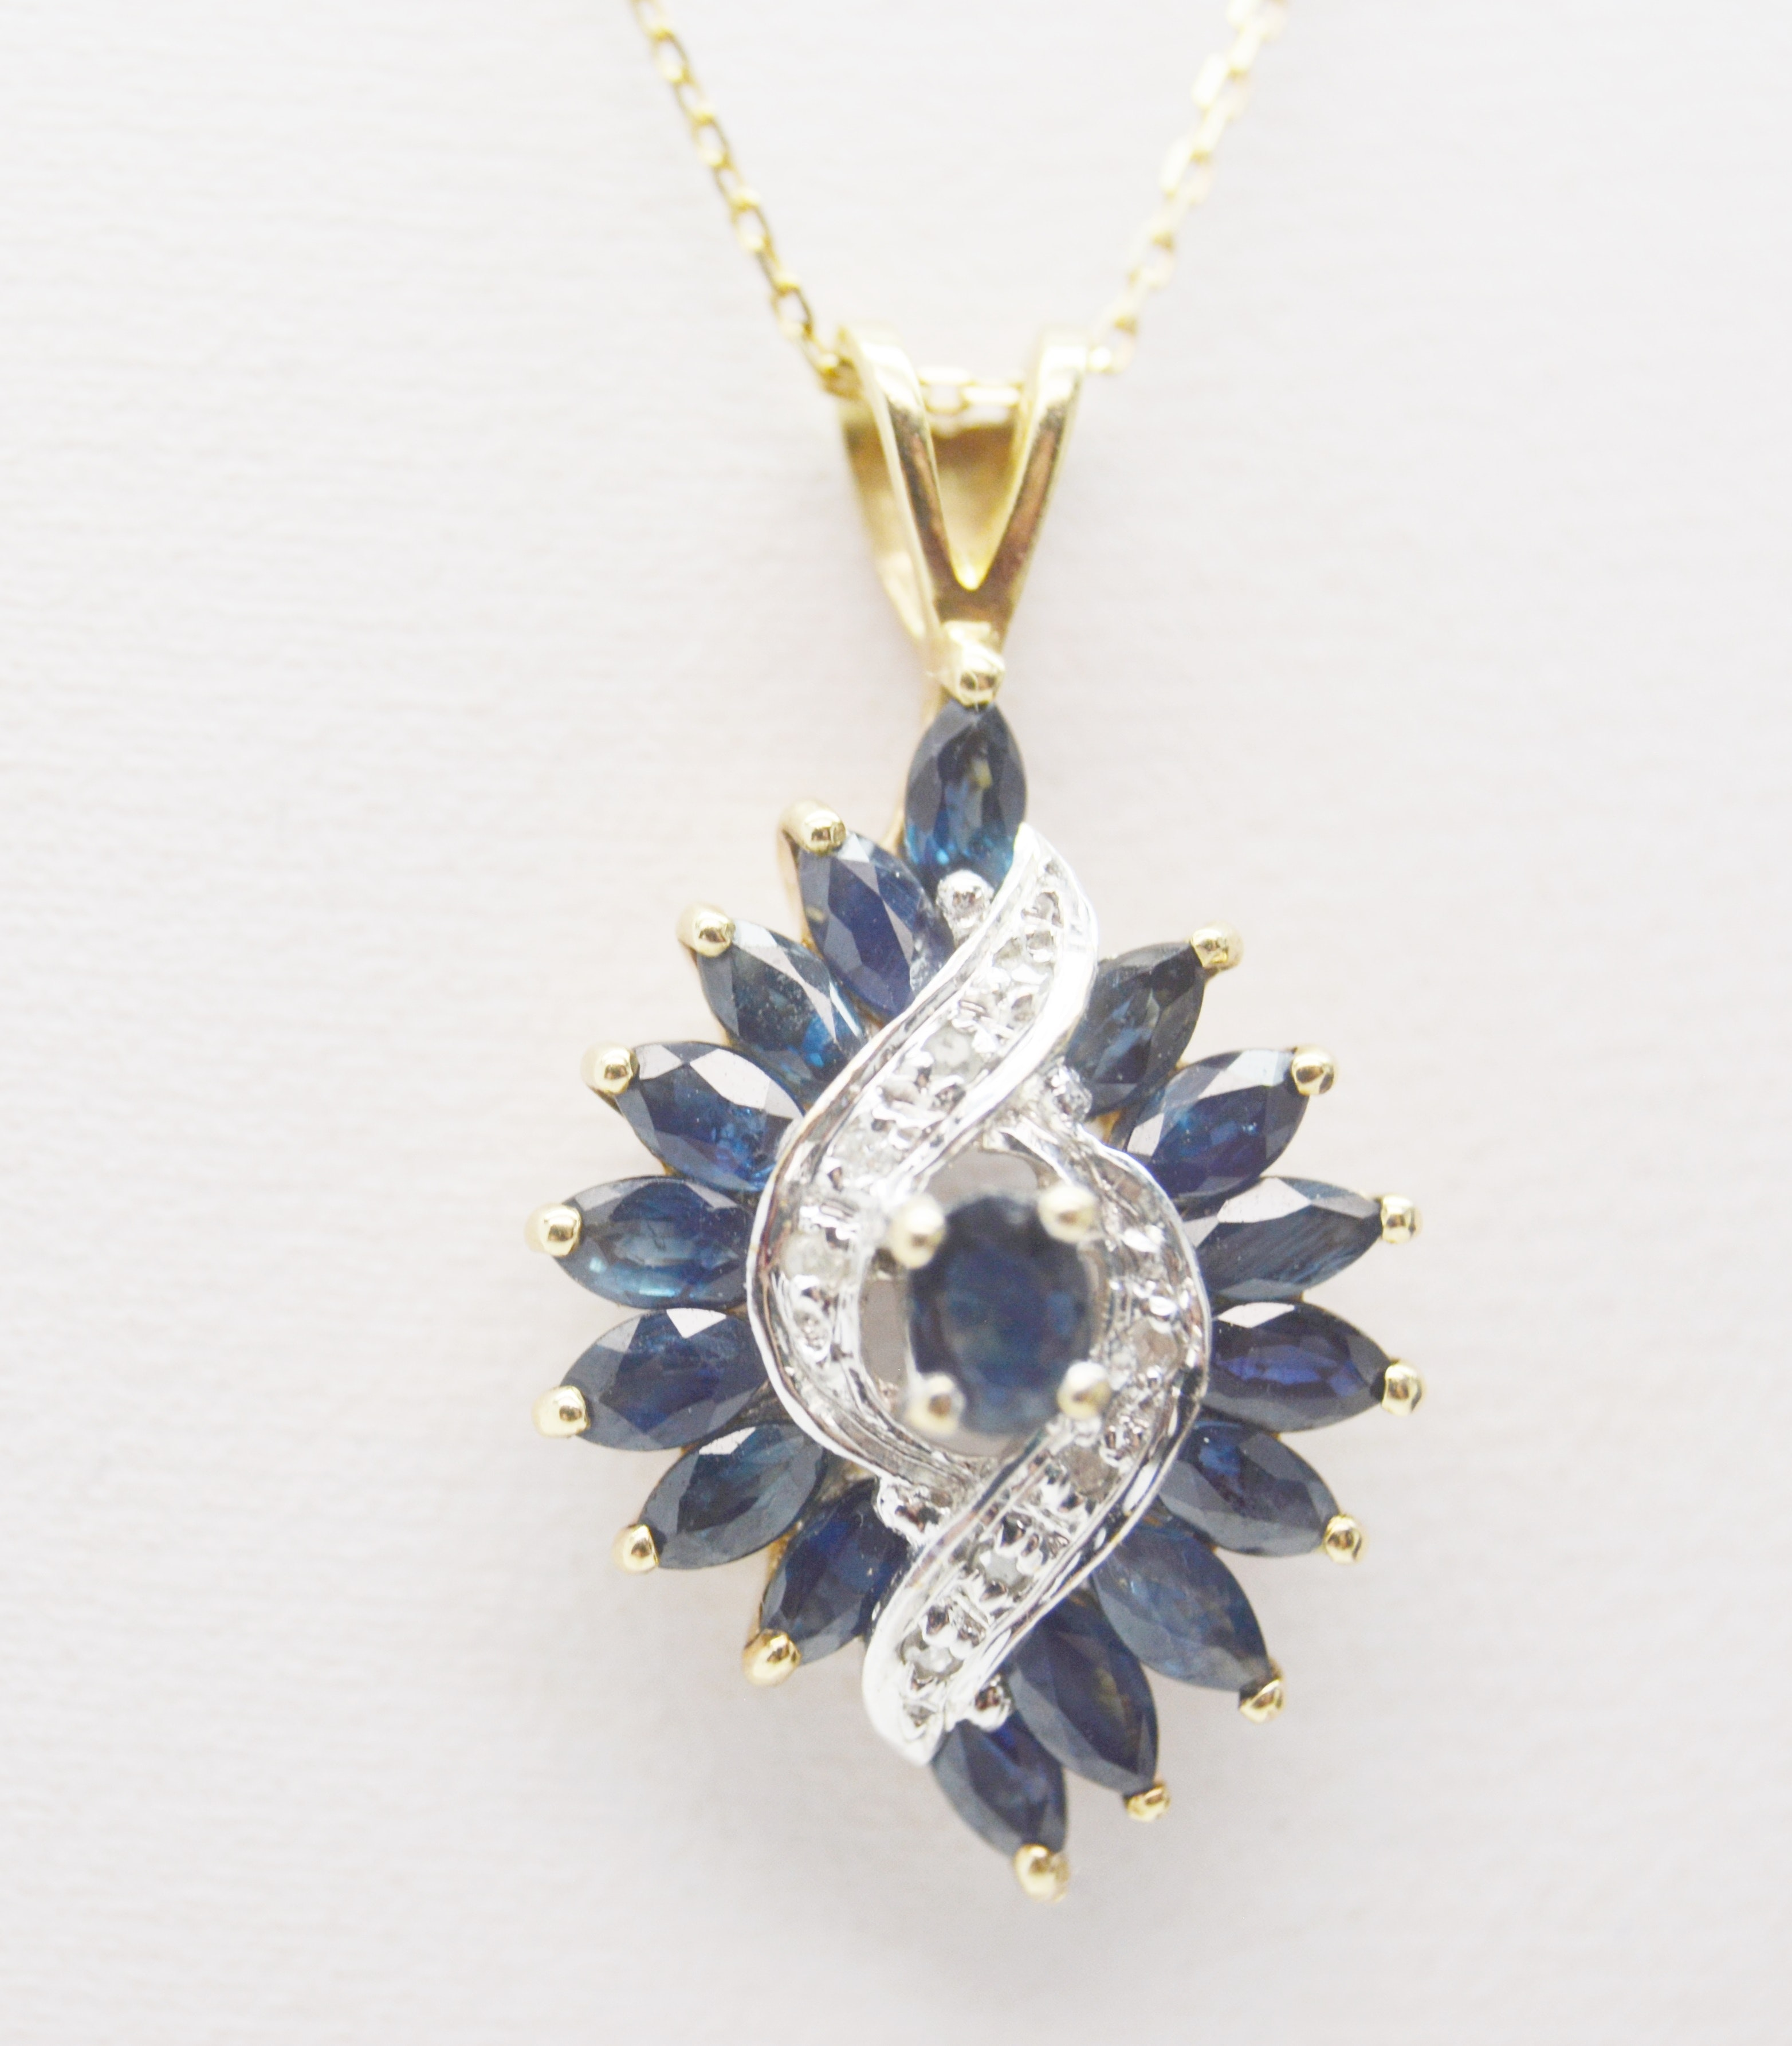 10K Yellow and White Gold Sapphire Diamond Pendant On 14K Yellow Gold Necklace